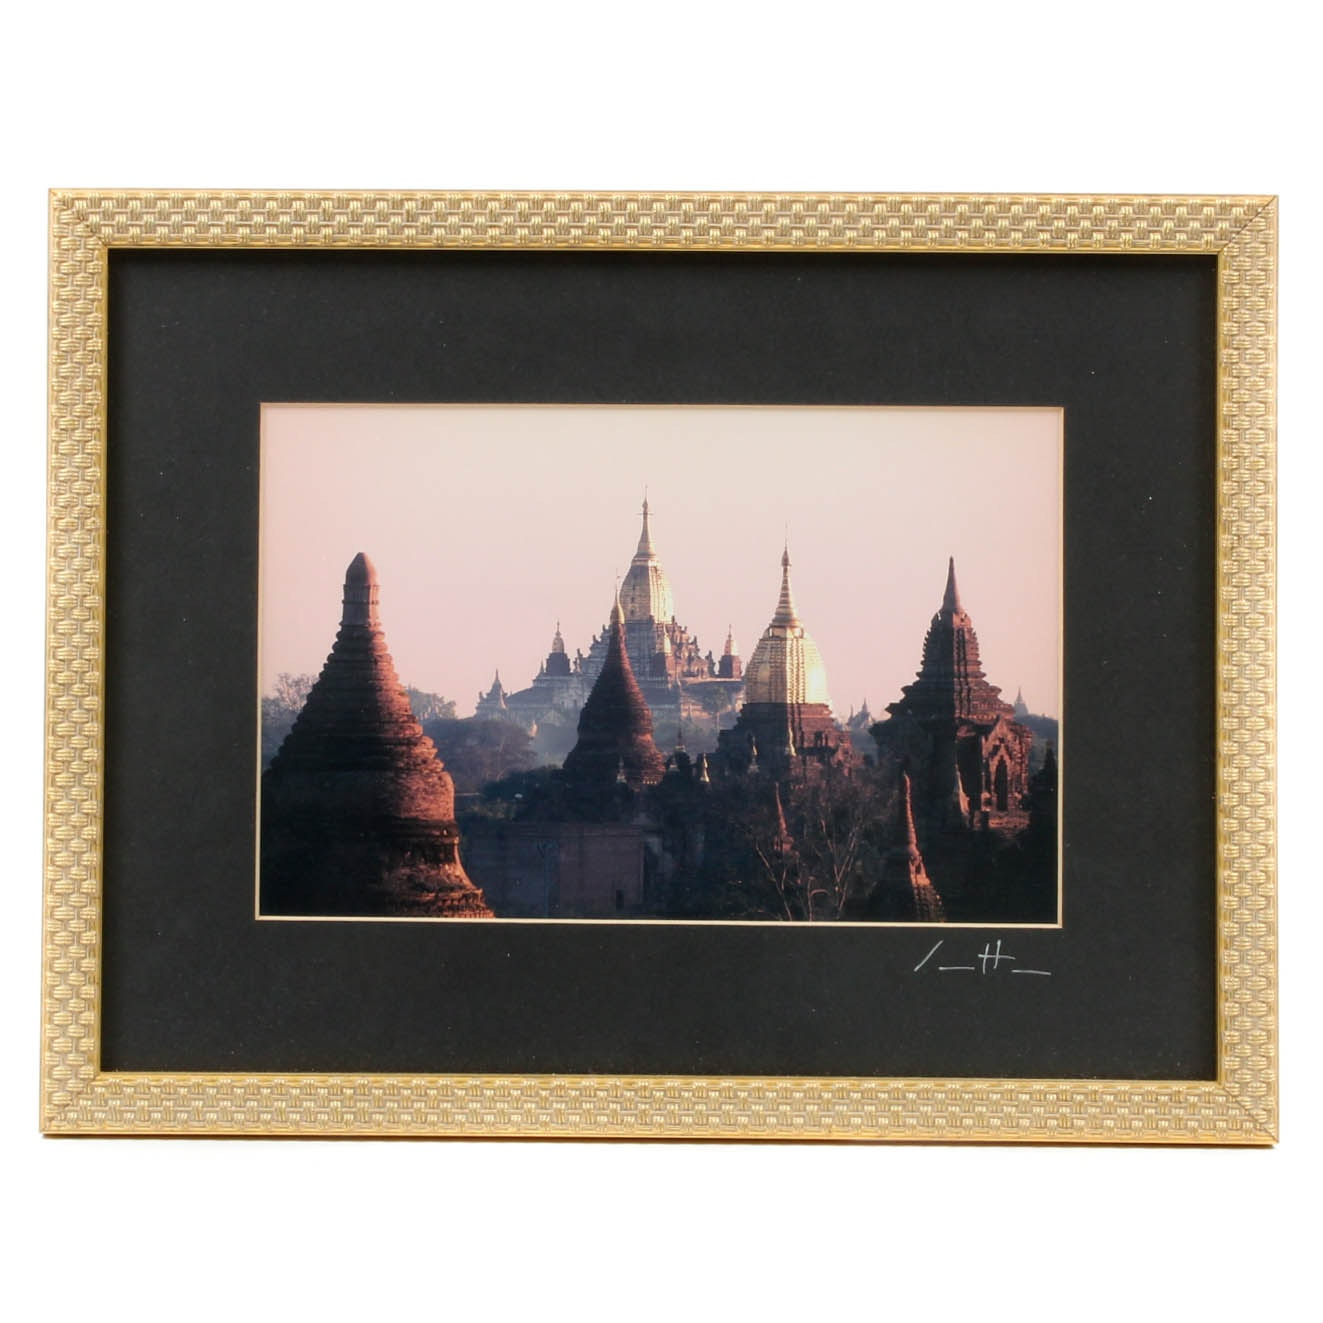 Framed Photograph from Thailand of Temple